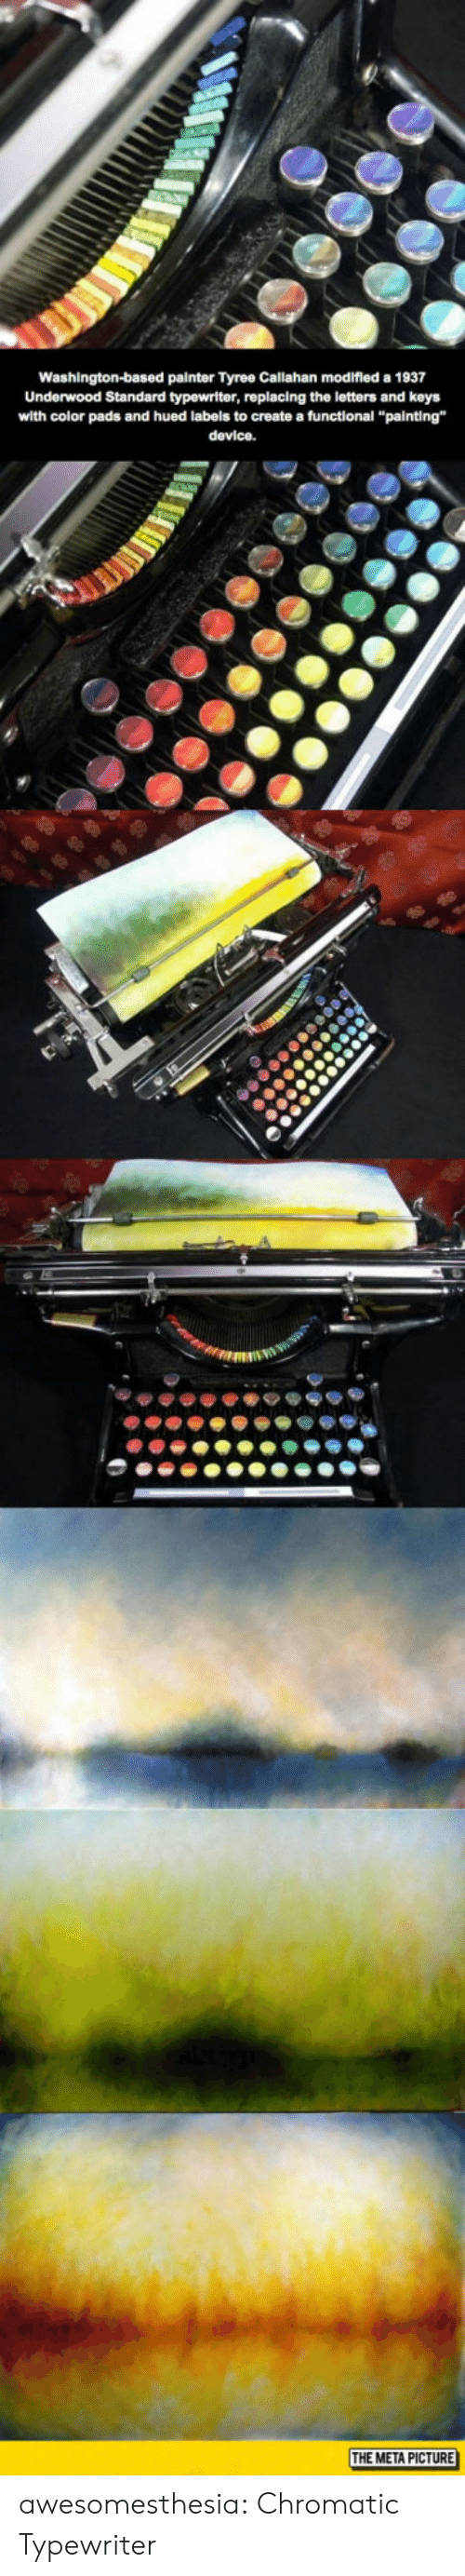 "tyree: Washington-based painter Tyree Callahan modifled a 1937  Underwood Standard typewriter, replacing the letters and keys  with color pads and hued labels to create a functional ""painting""  device.  THE META PICTURE awesomesthesia:  Chromatic Typewriter"